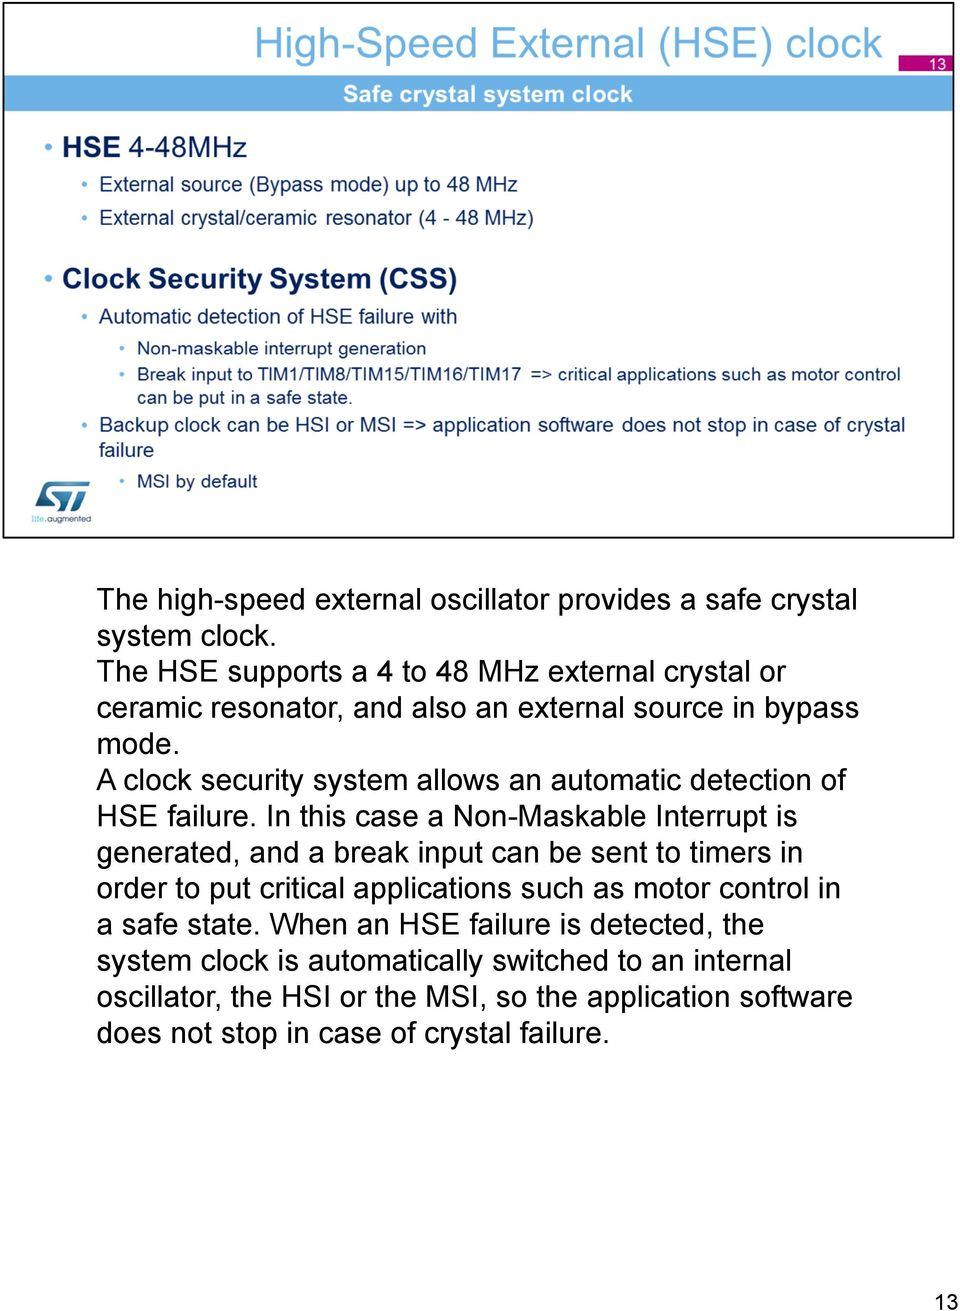 A clock security system allows an automatic detection of HSE failure.